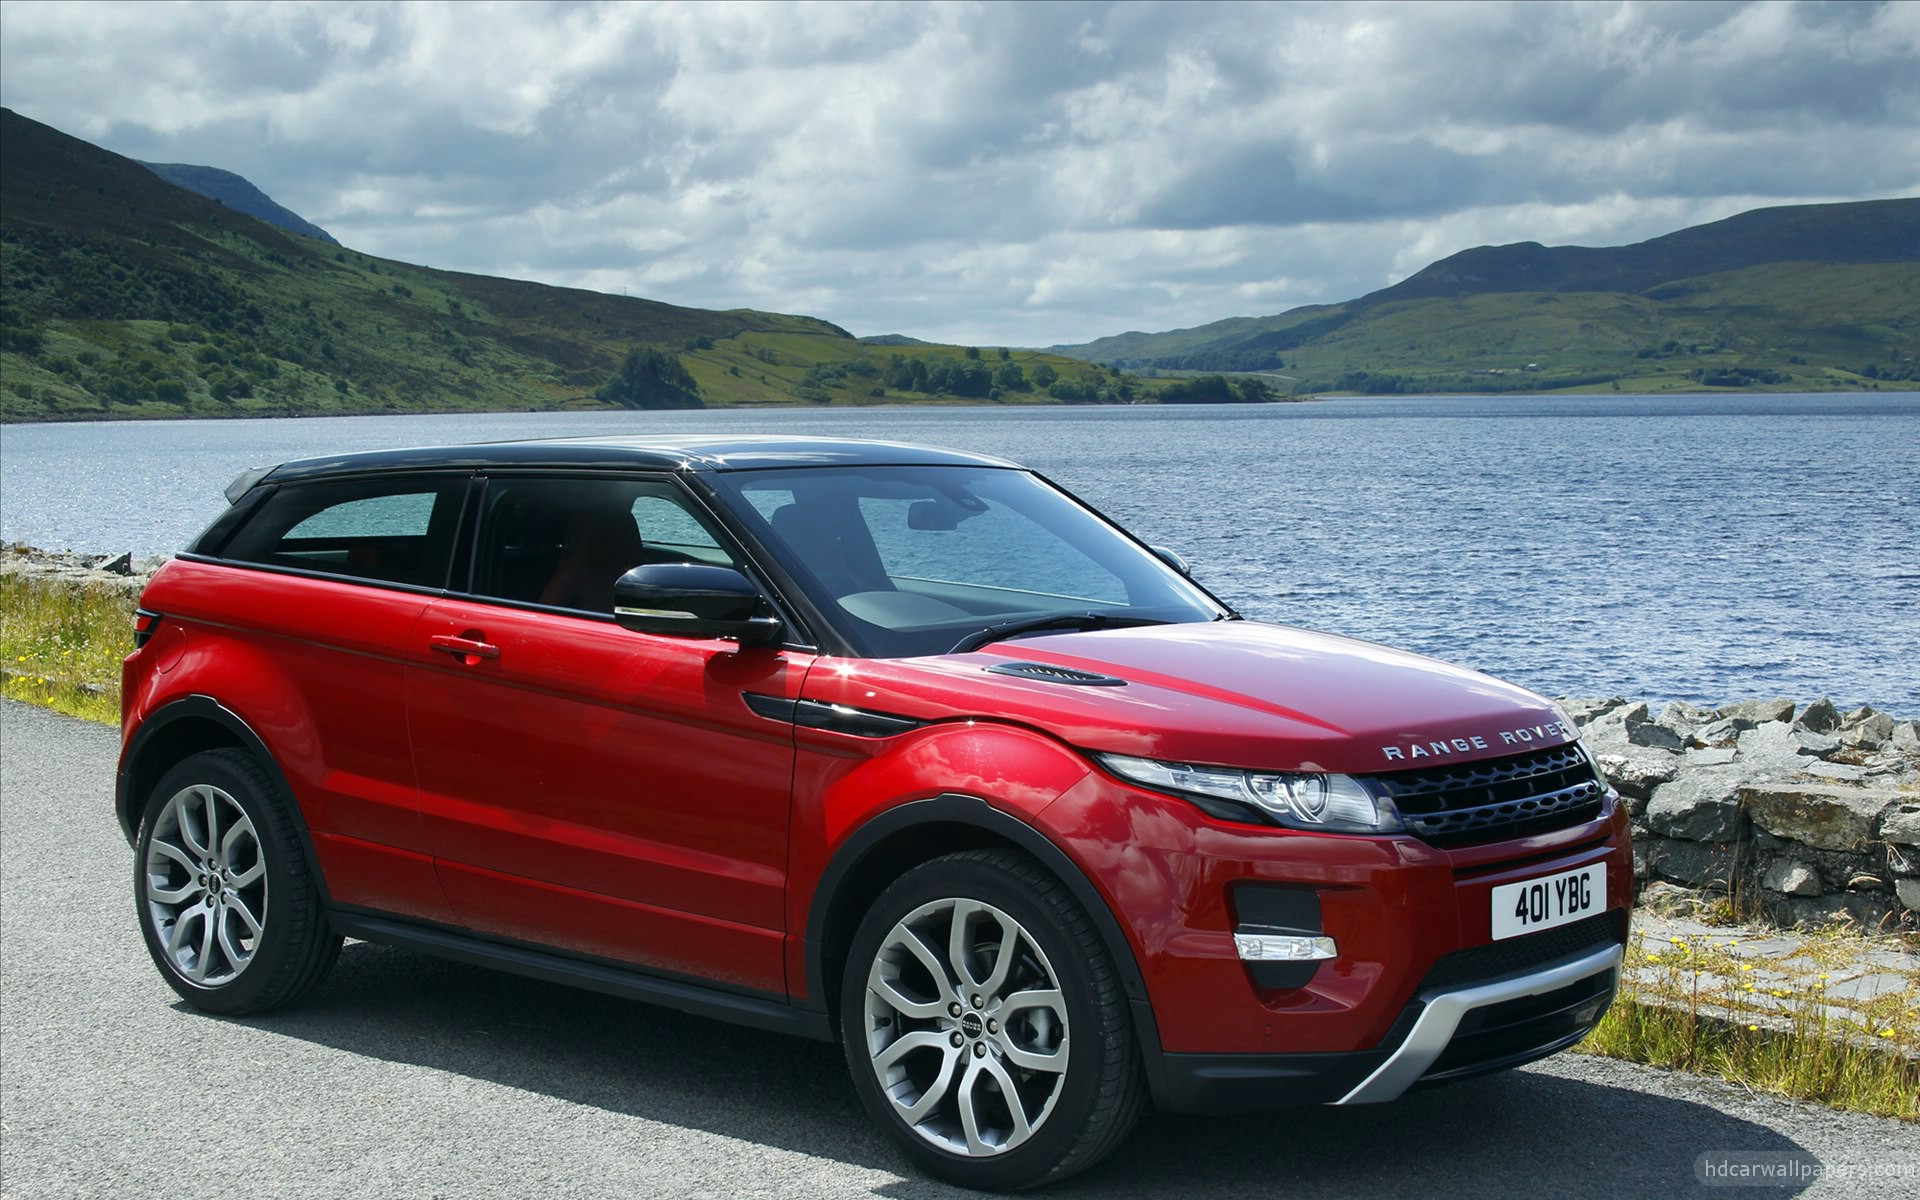 range rover evoque 2012 wallpaper hd car wallpapers id. Black Bedroom Furniture Sets. Home Design Ideas